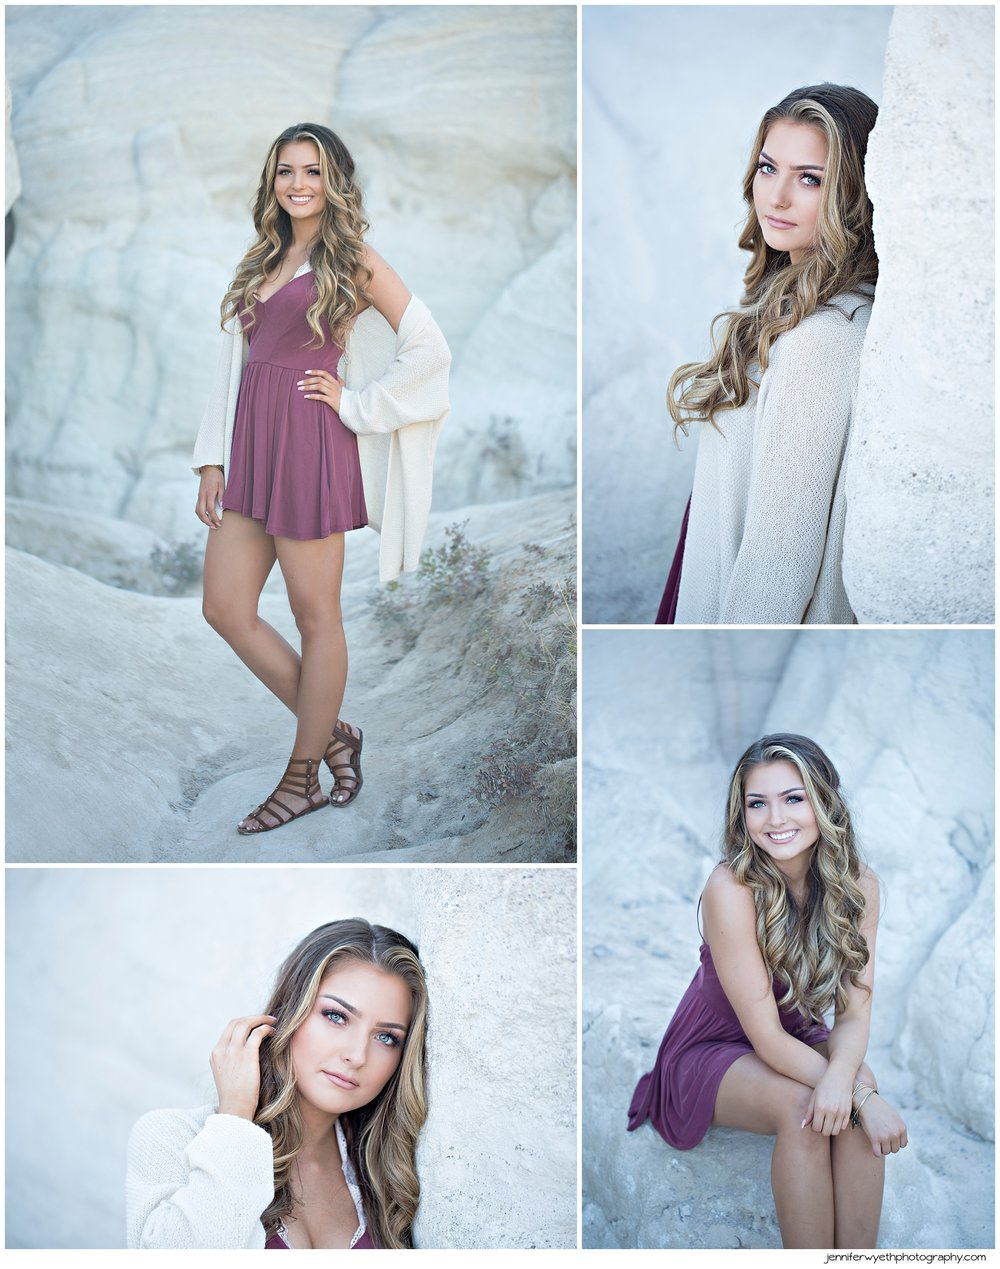 Jennifer-Wyeth-photography-senior-pictures-colorado-springs-photographer_0201.jpg